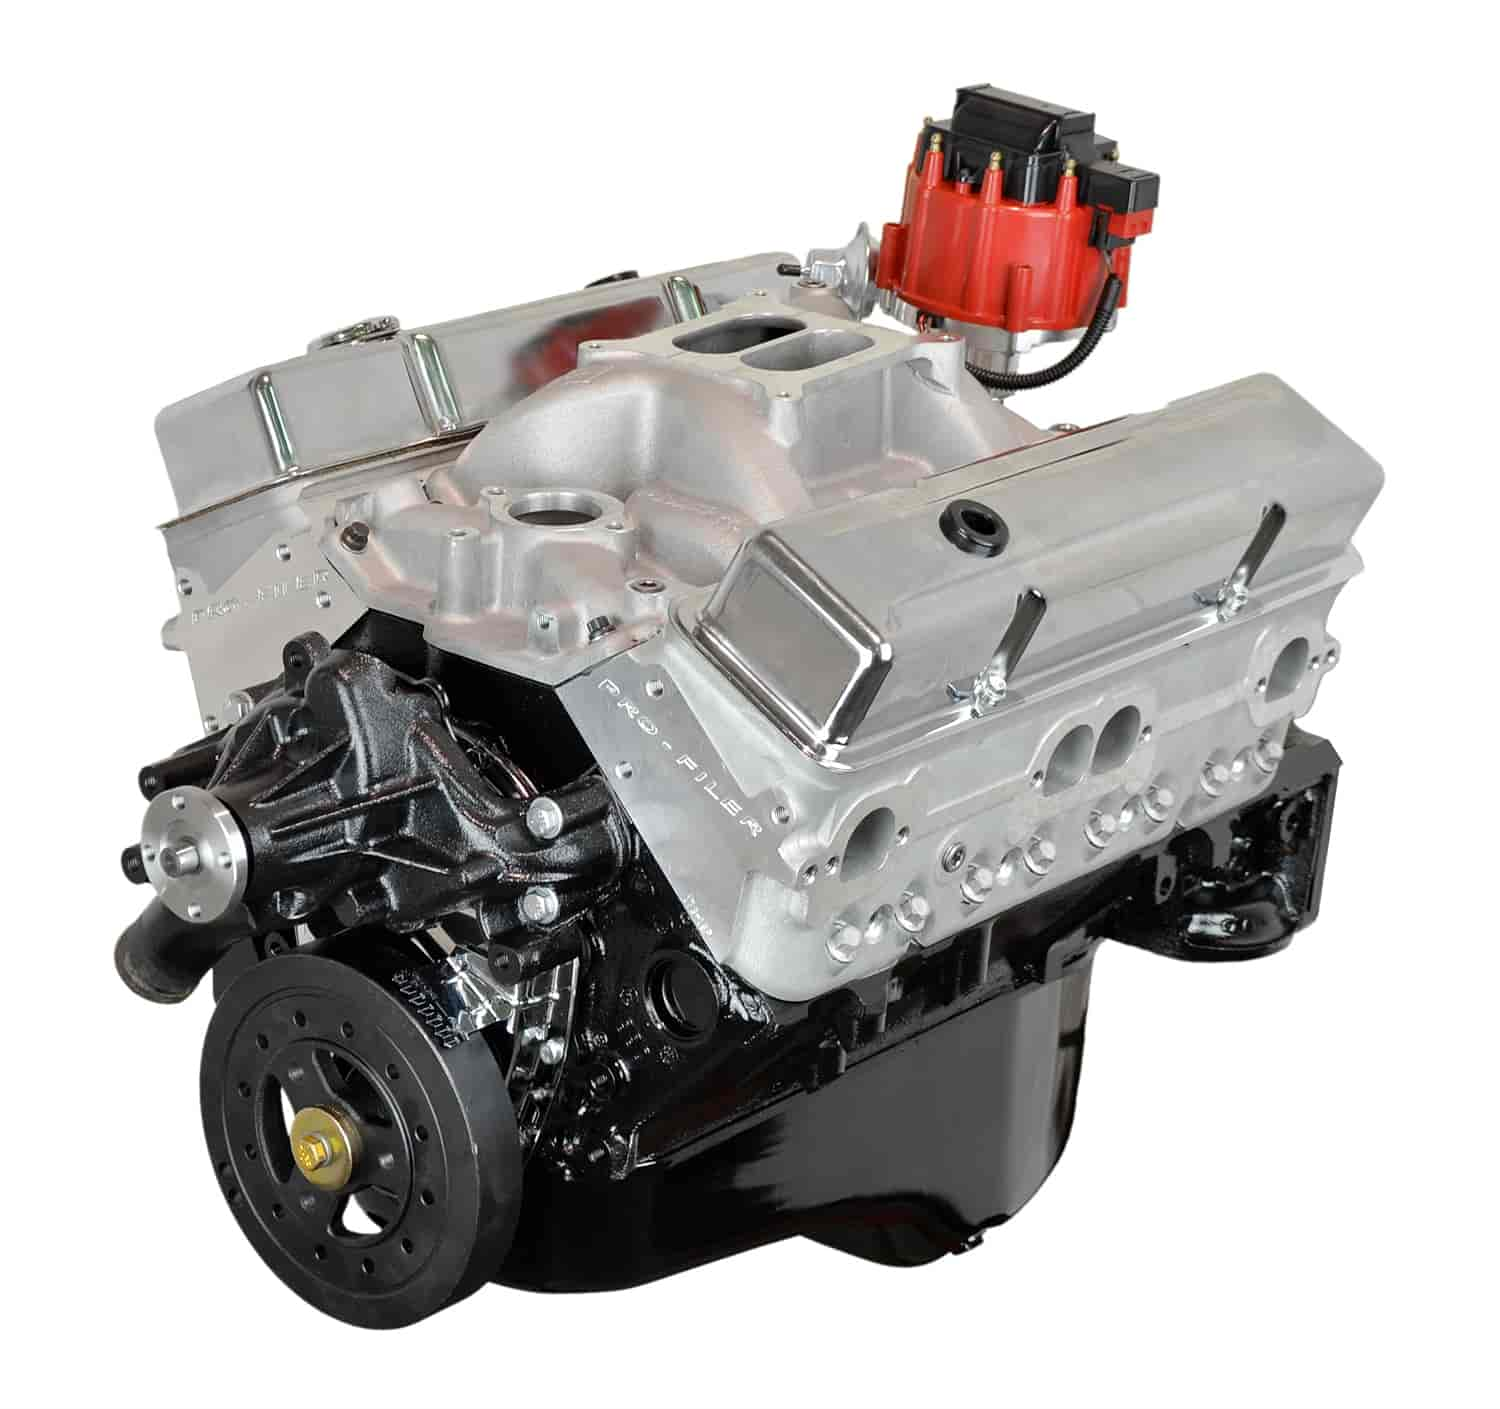 Atk engines hp94m high performance crate engine small block chevy atk engines hp94m malvernweather Choice Image